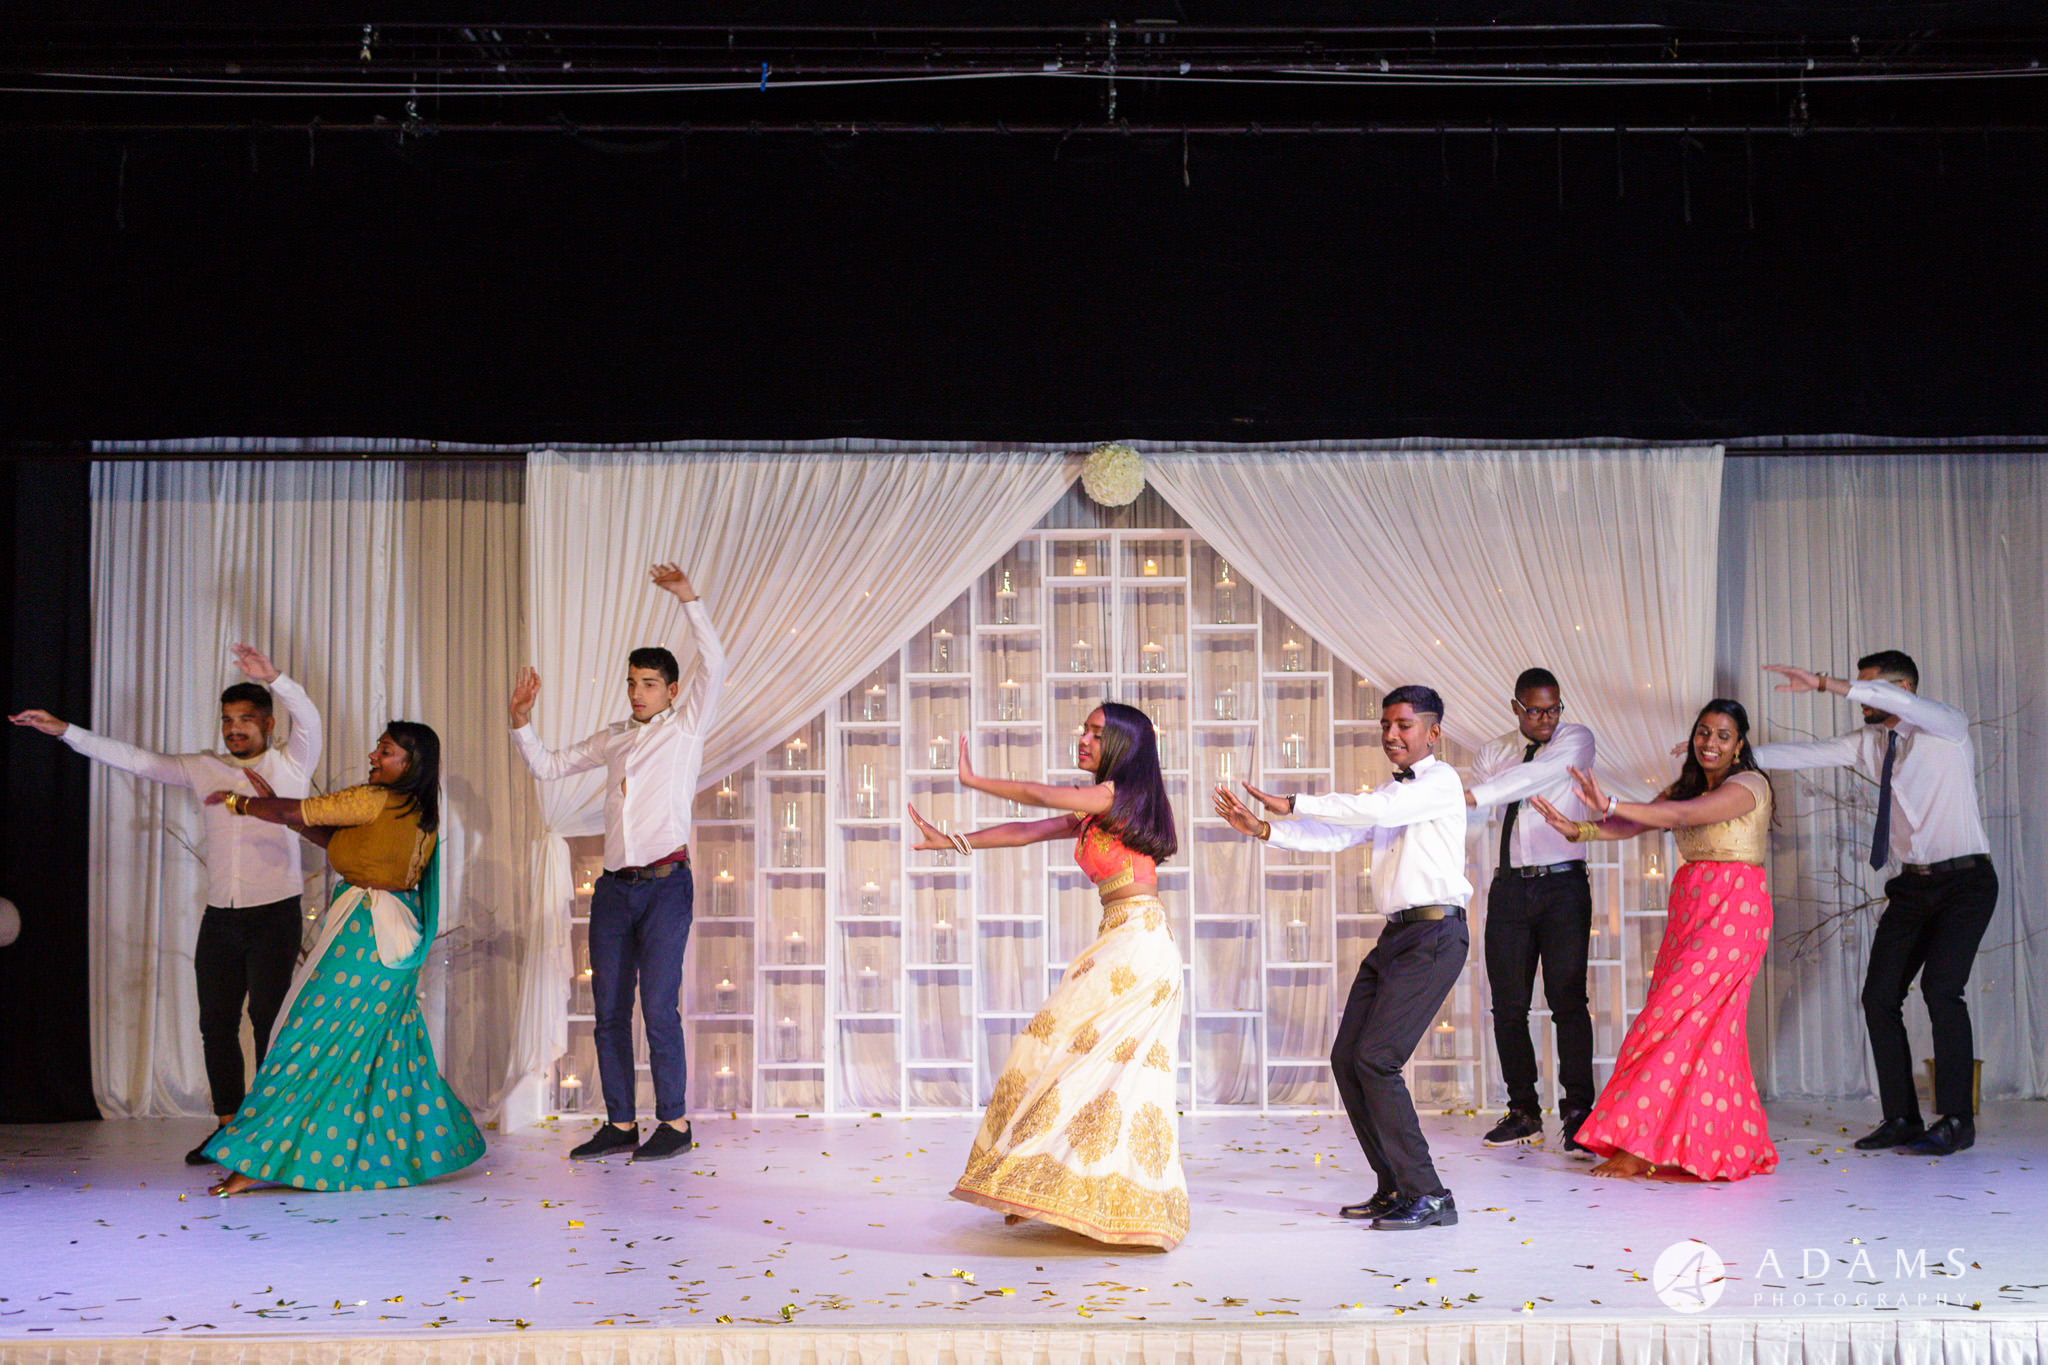 Oslo Tamil Wedding dance on the stage